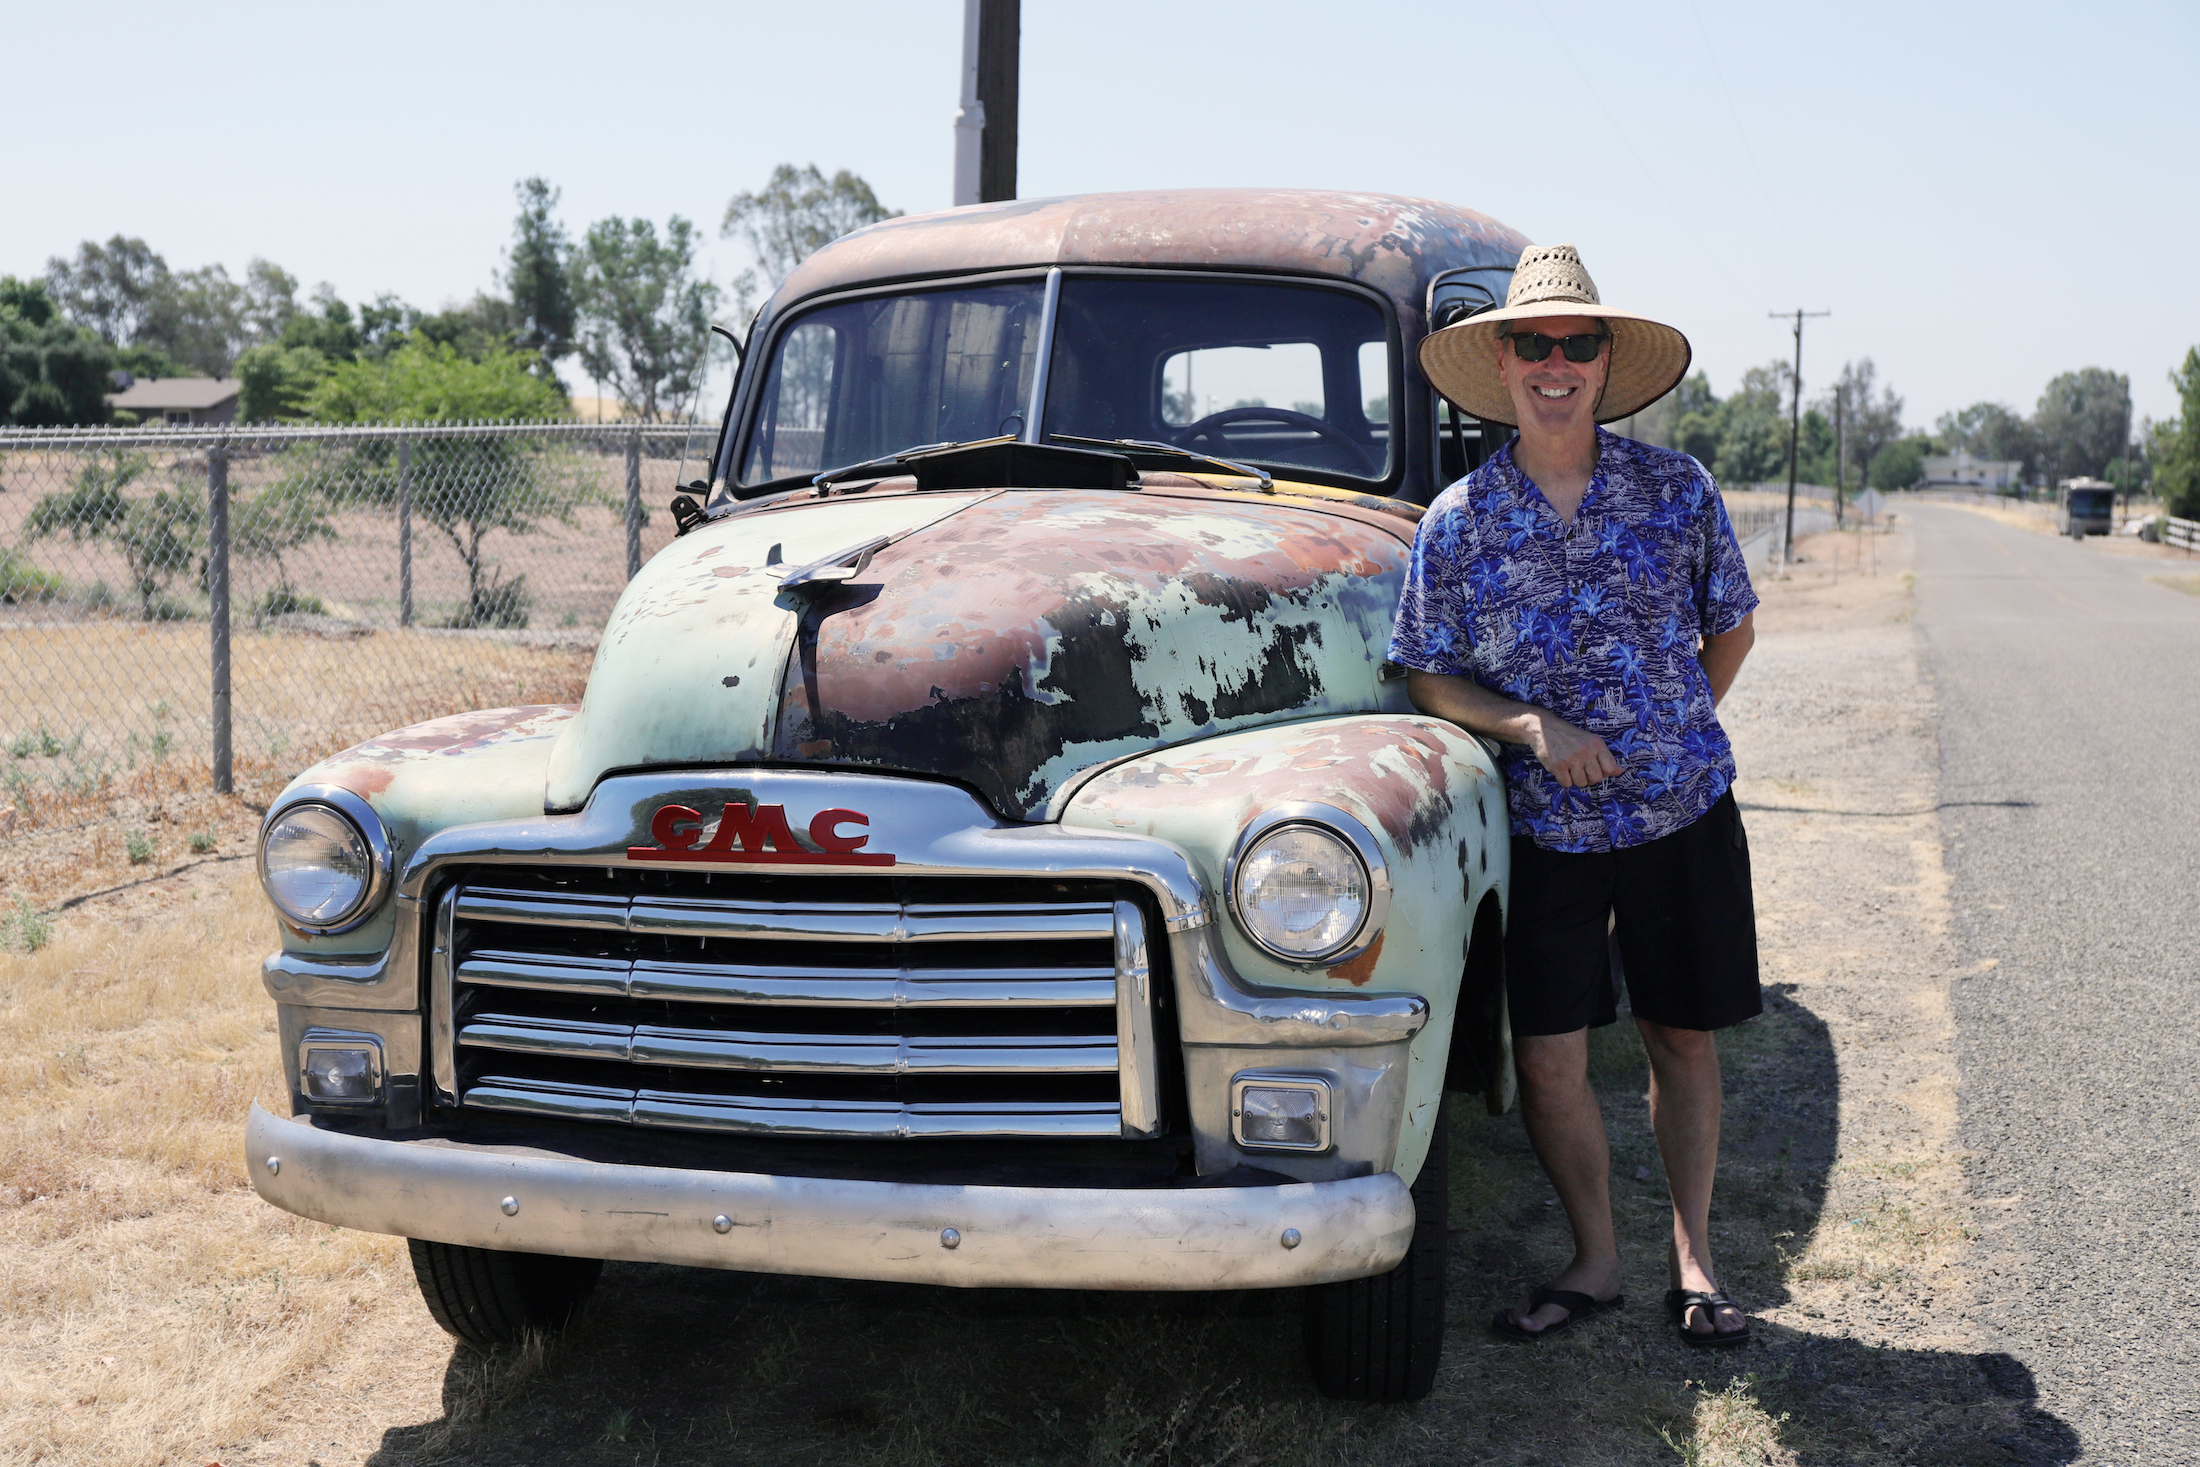 2020-07-181953 GMC 100 Panel Truck Ugly owner Nick Dounias patina owner